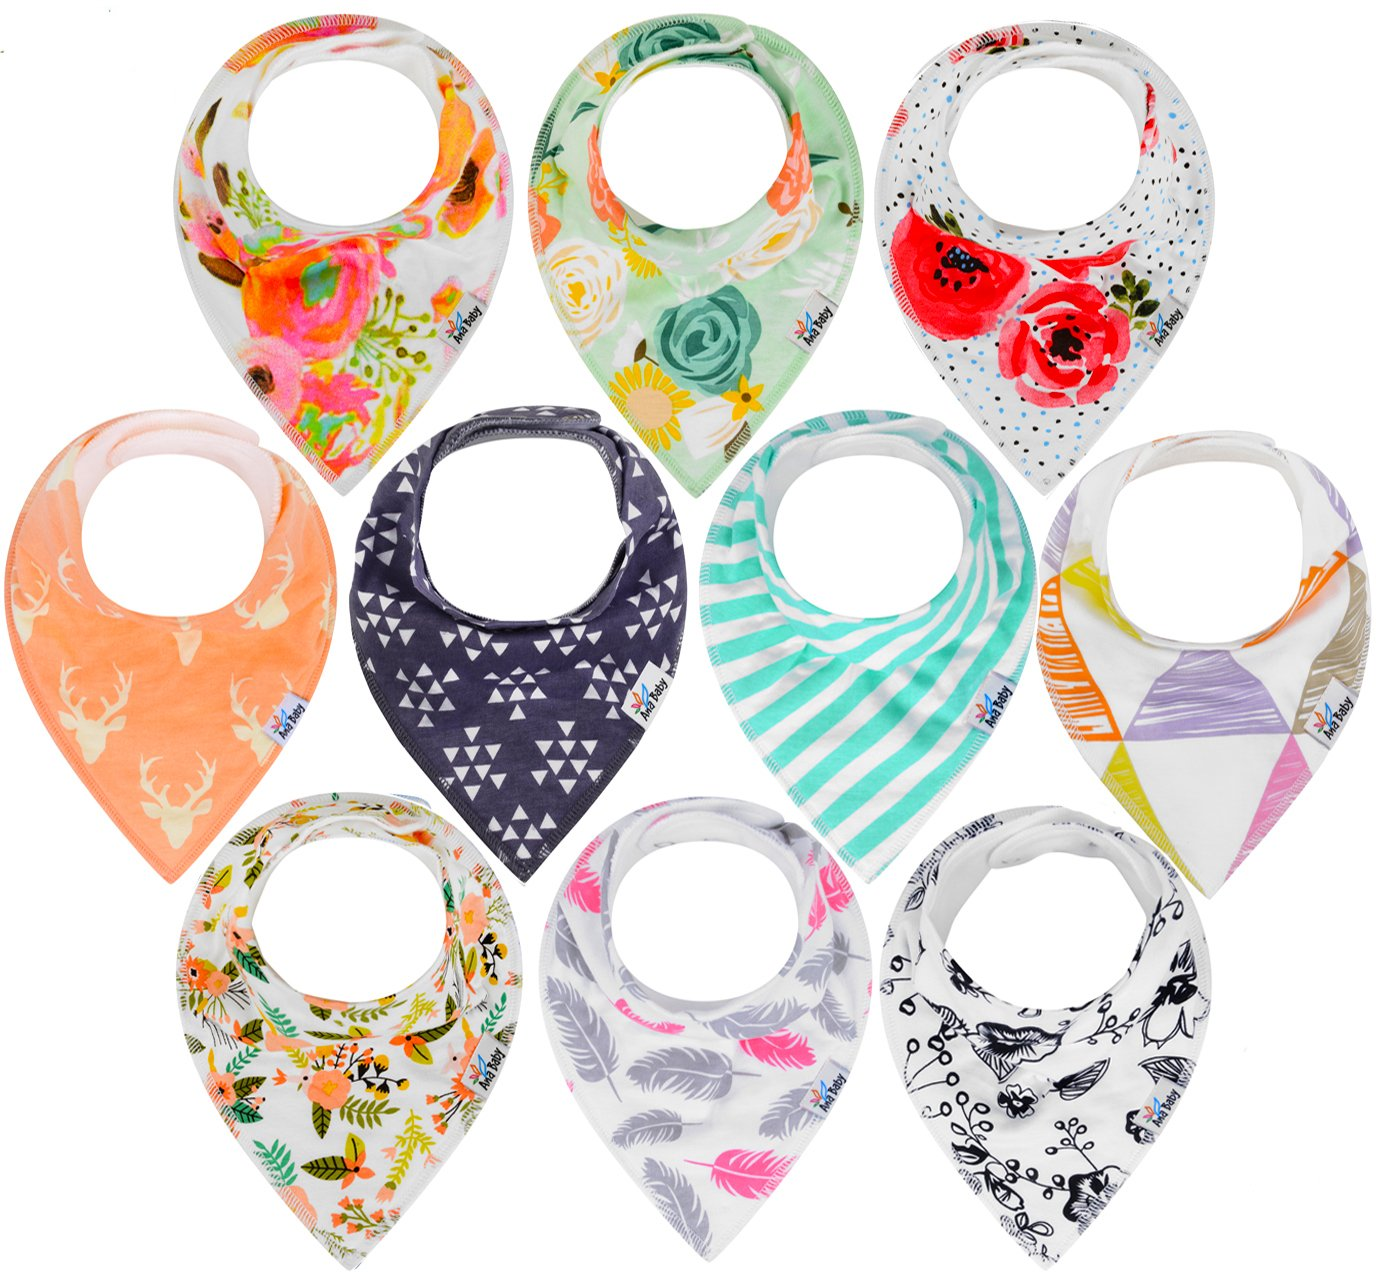 10-Pack Baby Bandana Drool Bibs for Drooling and Teething, 100% Organic Cotton, Soft and Absorbent,Bibs for Baby Girls - Baby Shower Gift Set by Ana Baby